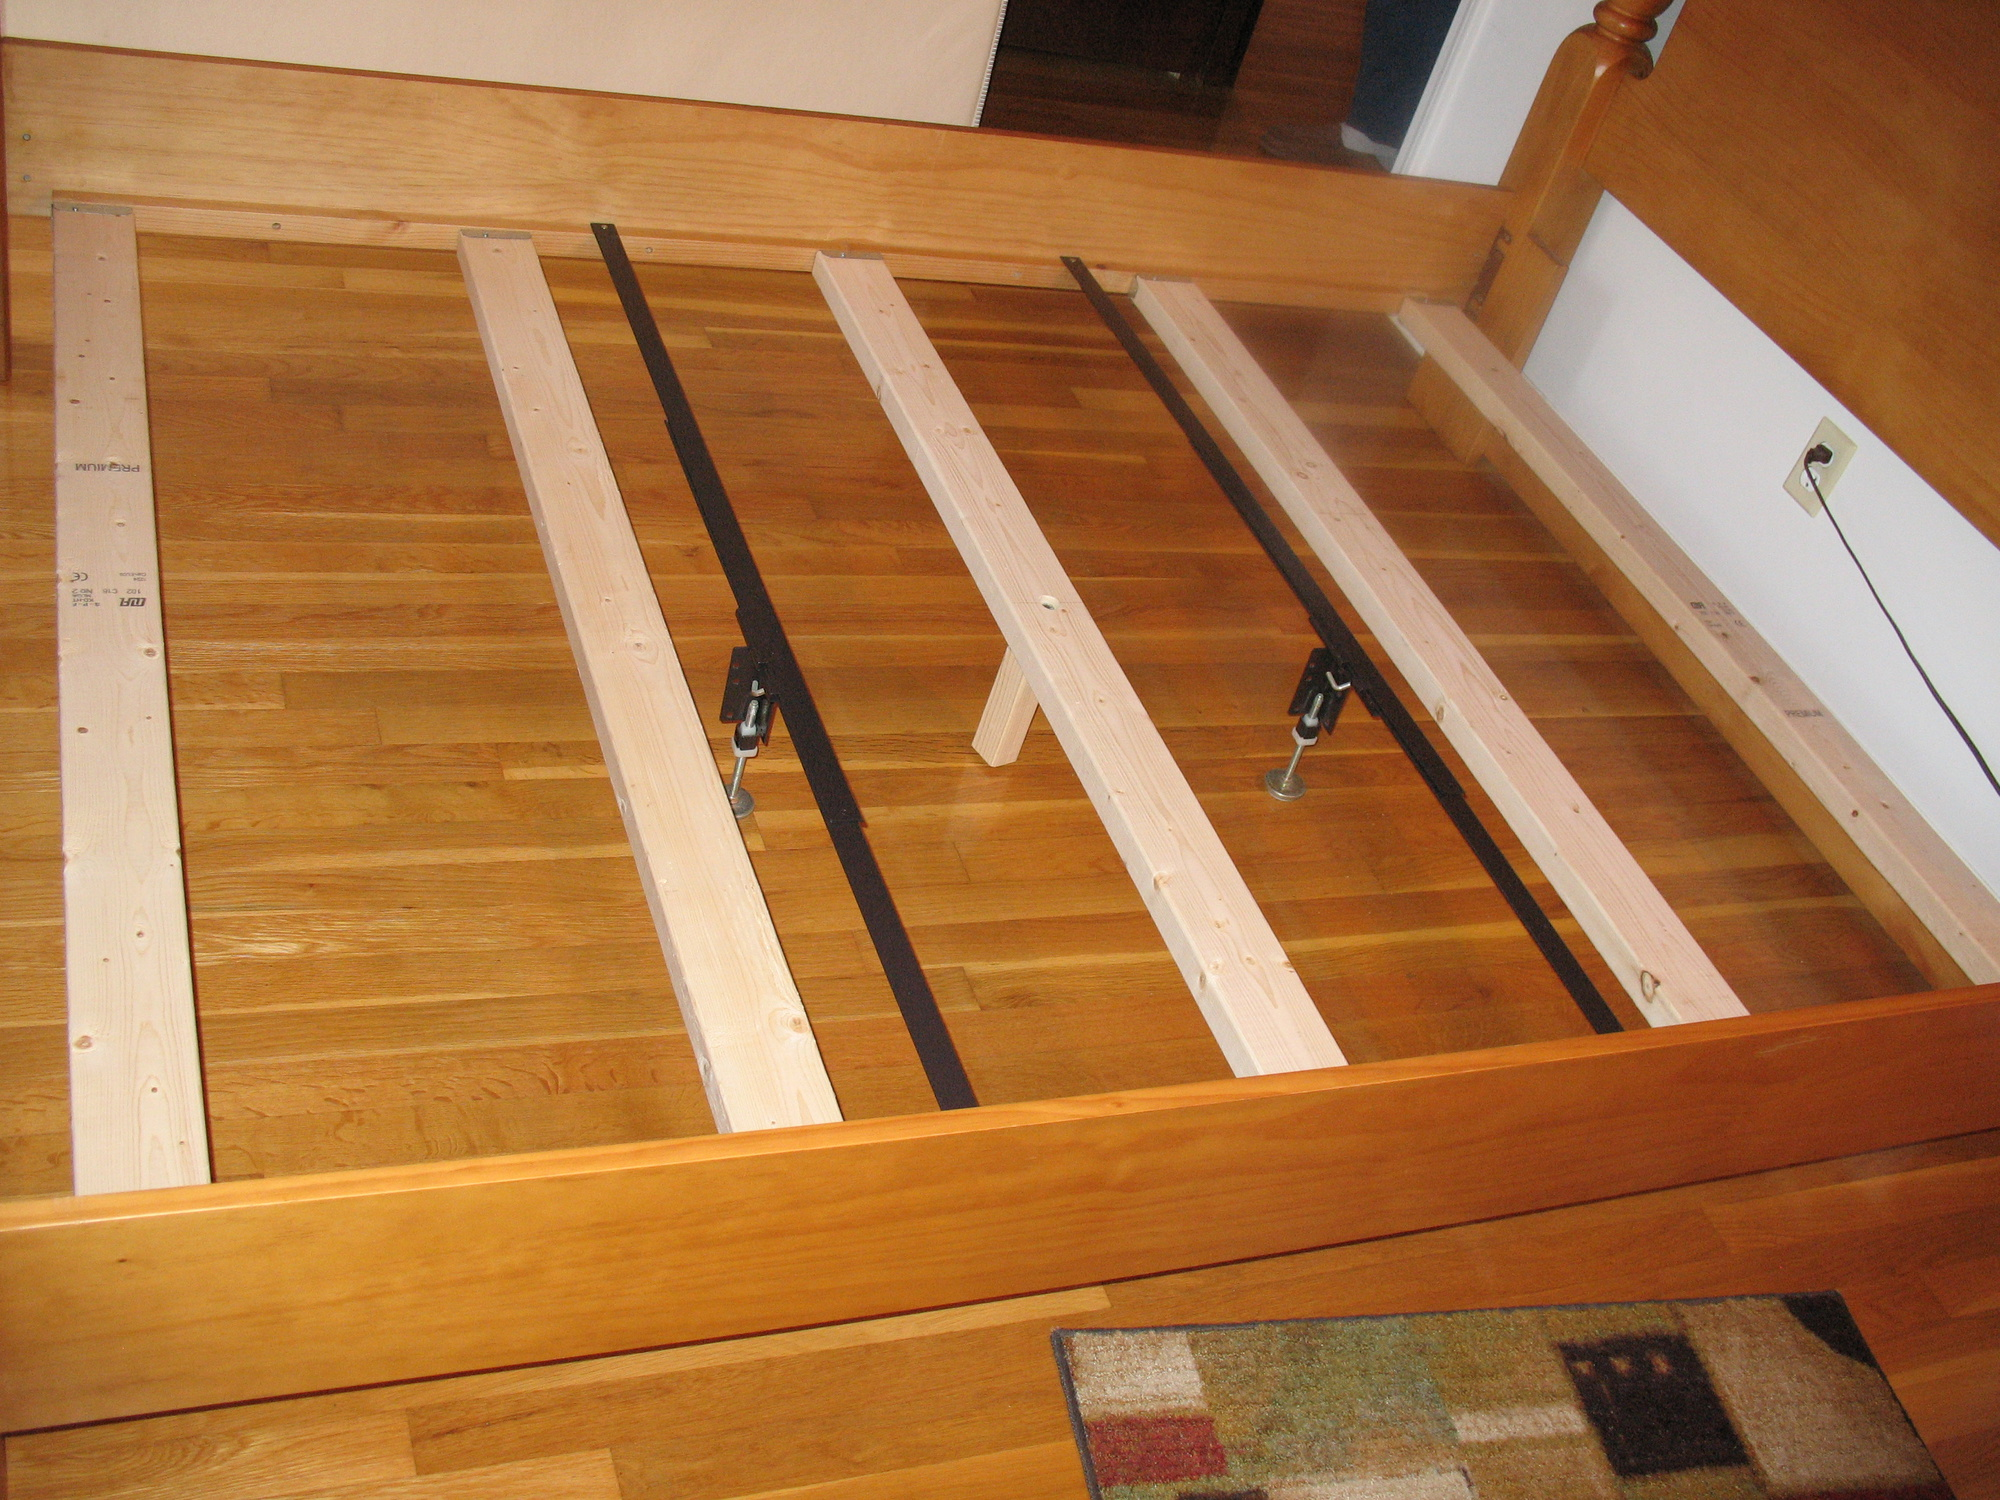 Bed Frame 9 Steps with Pictures  Instructablescom